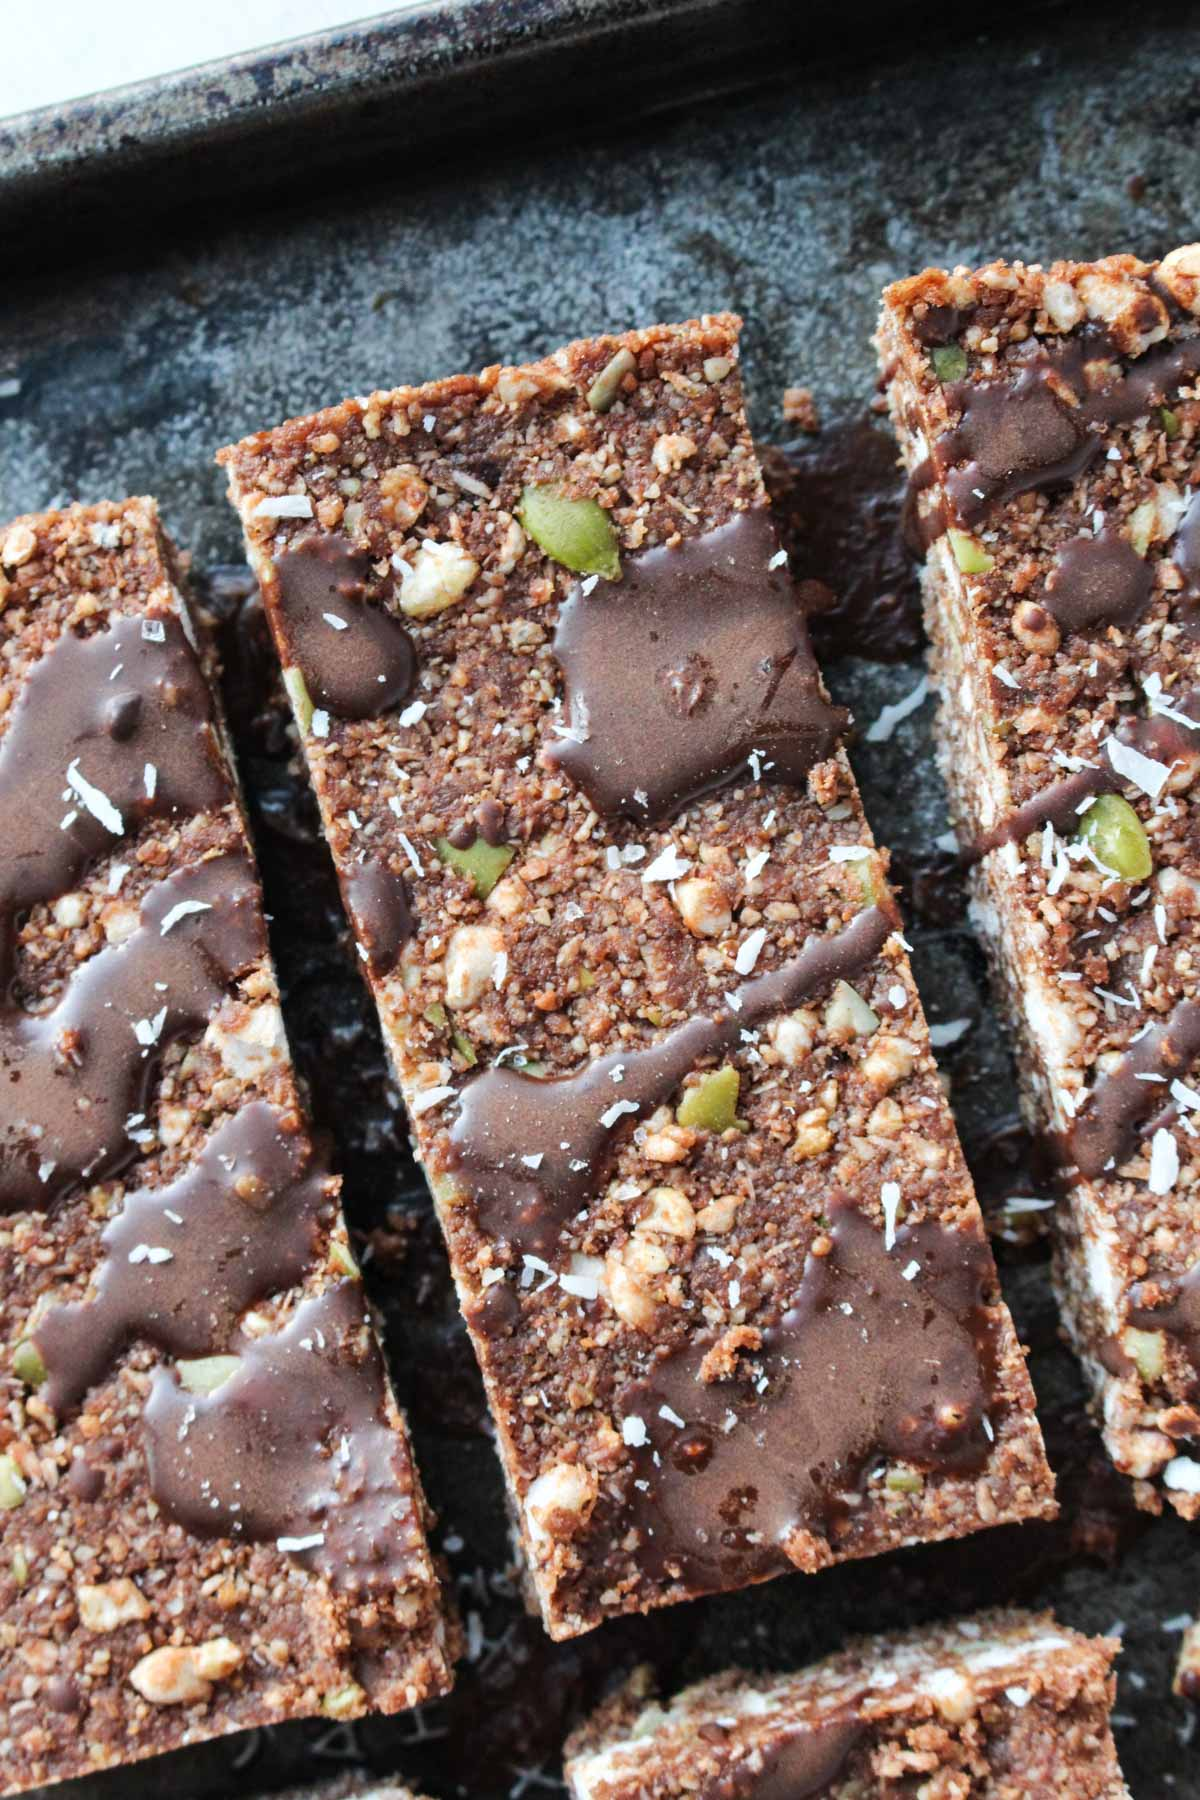 Close up shot of energy bars with chocolate drizzle on top.